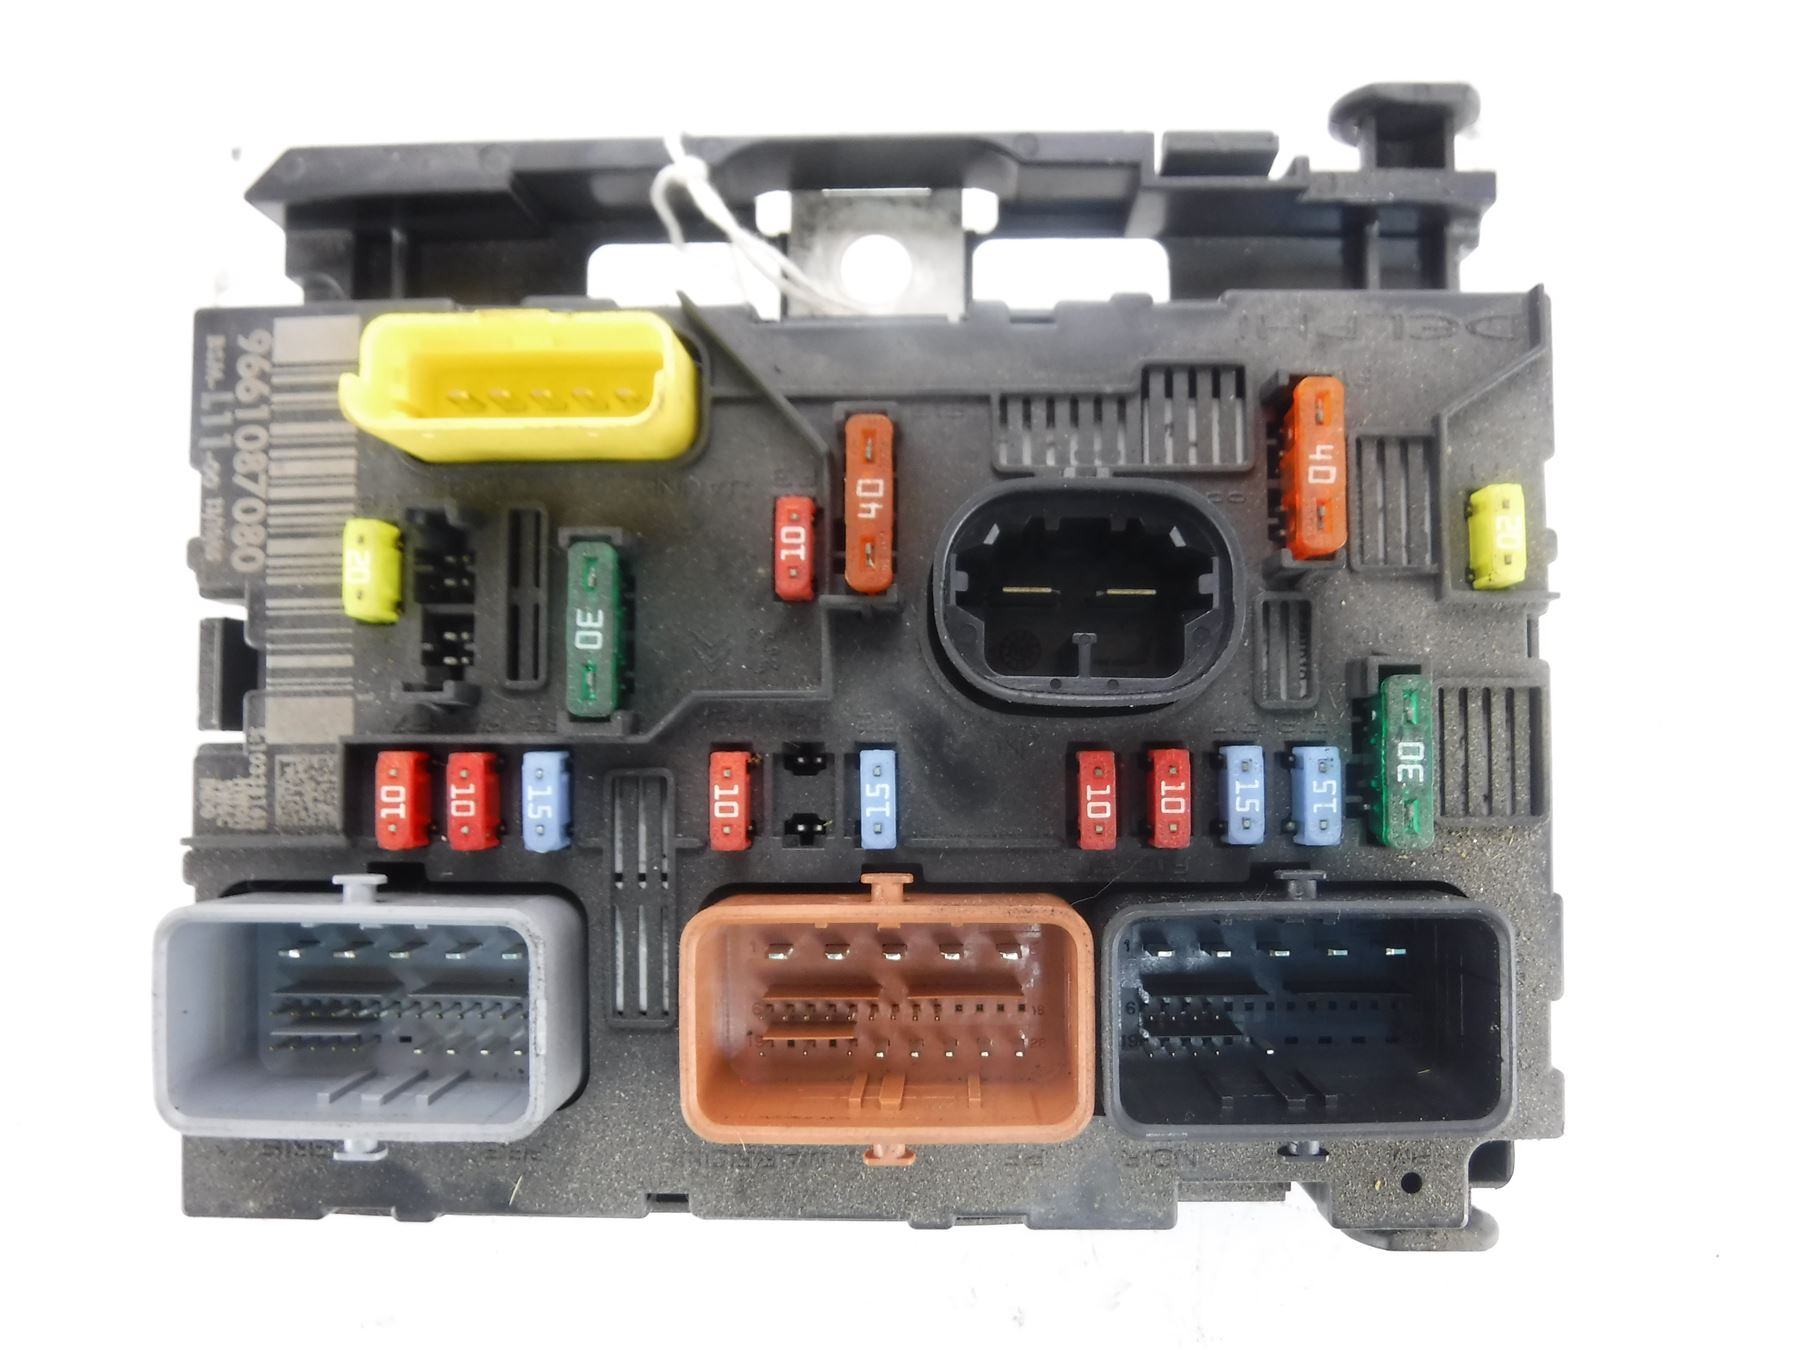 Peugeot 307 2000 2008 Fuse Box Bsm L11 9661087080 Ebay Wiring 2007 Image Is Loading